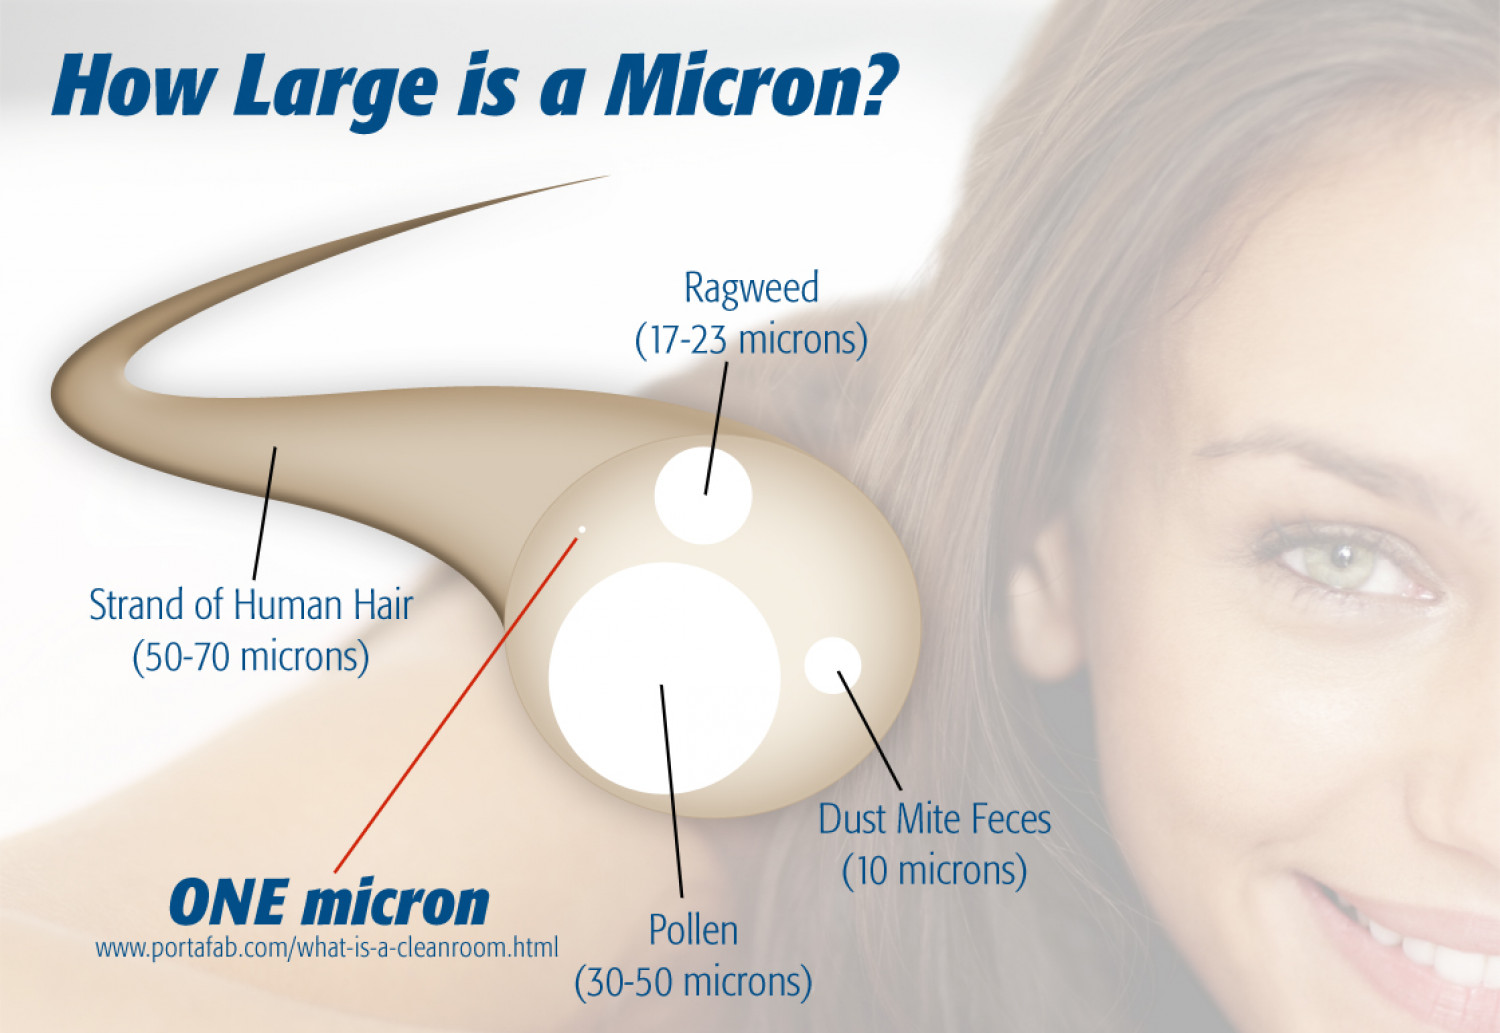 How Large is a Micron? Infographic